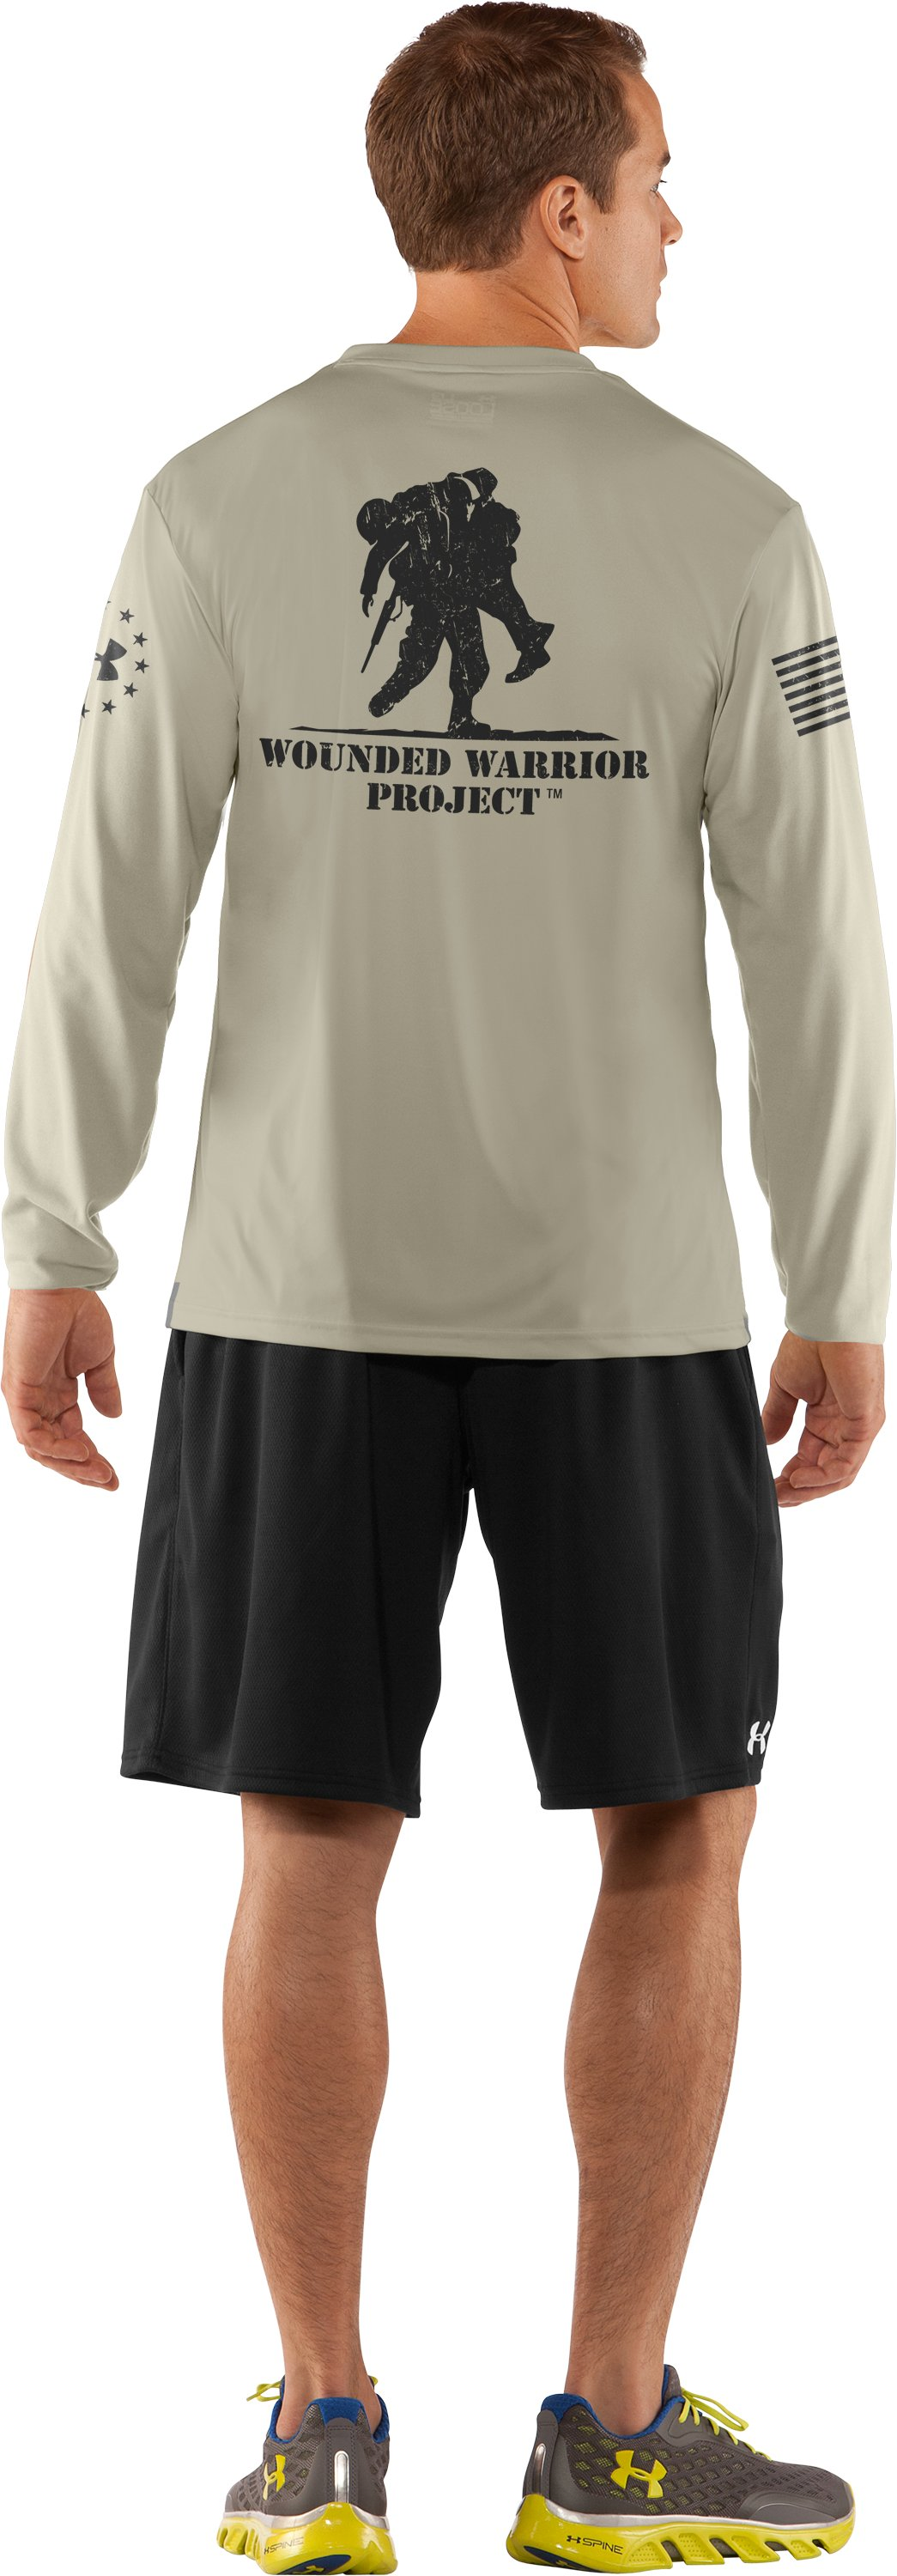 Men's WWP Long Sleeve T-Shirt, Desert Sand, Back